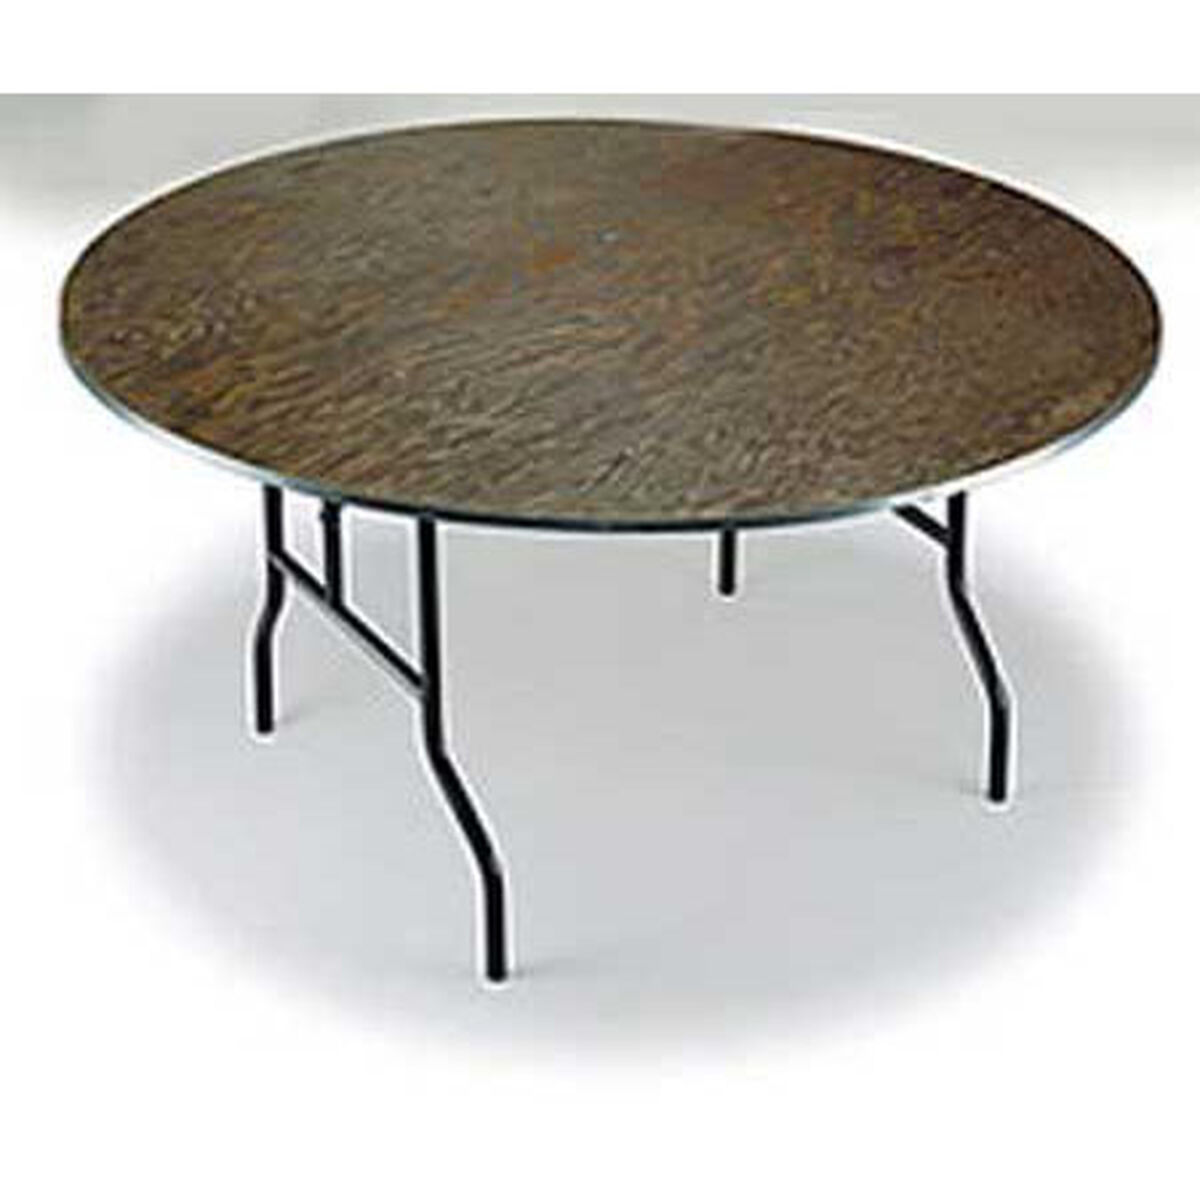 Our E Series Small Walnut Stain Top Plywood Core 30 Diameter Round Folding Table